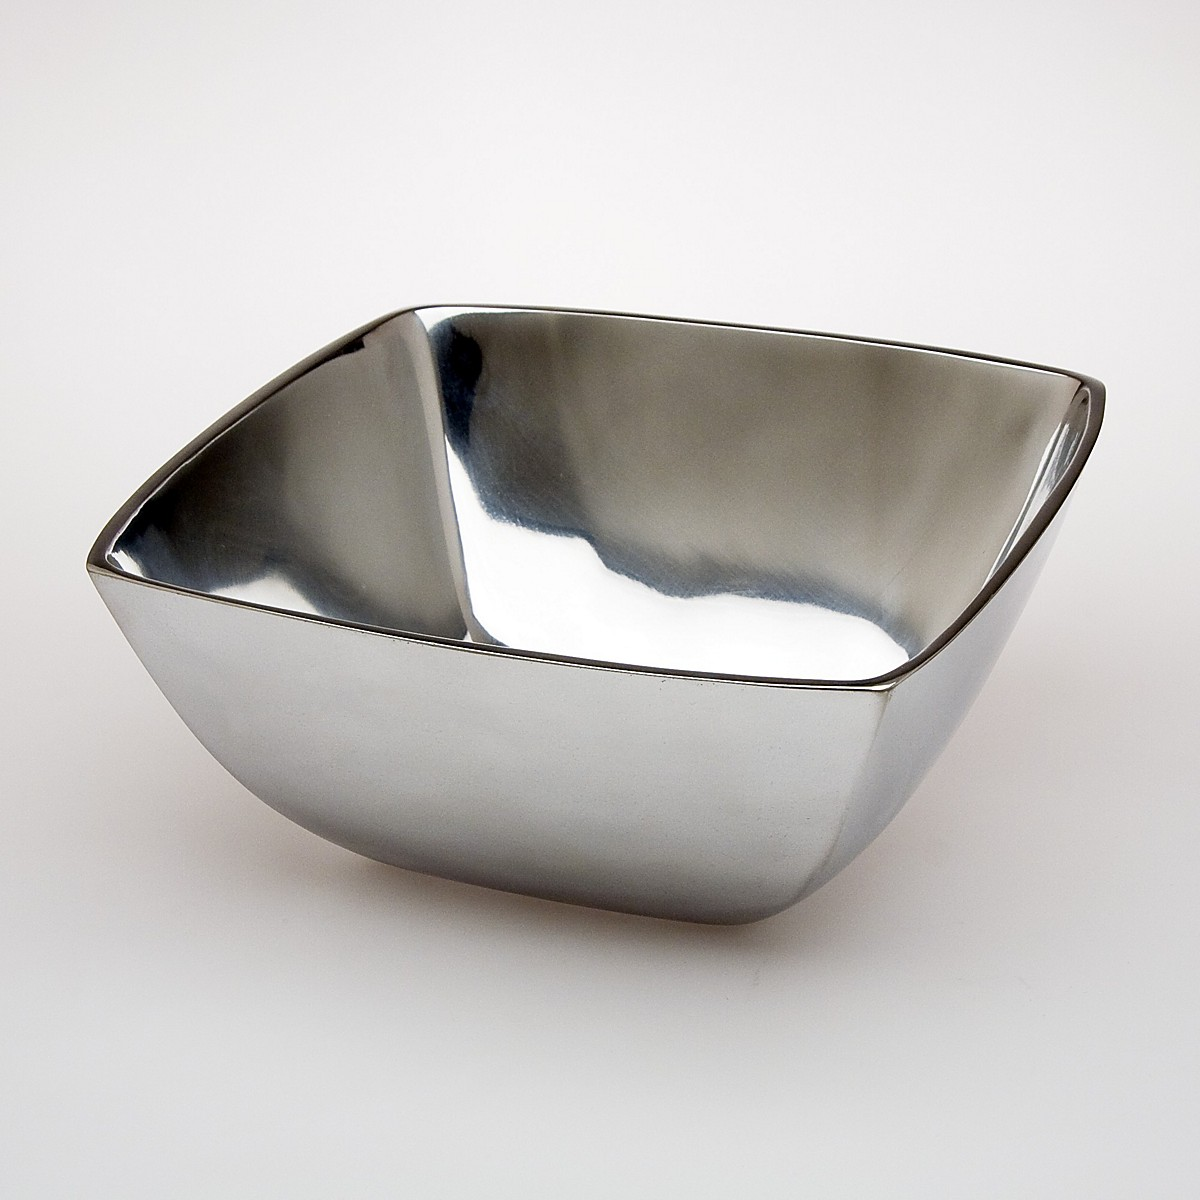 Astonishing nambe bowl design dining ware nambe bowl serveware plus silverware ideas